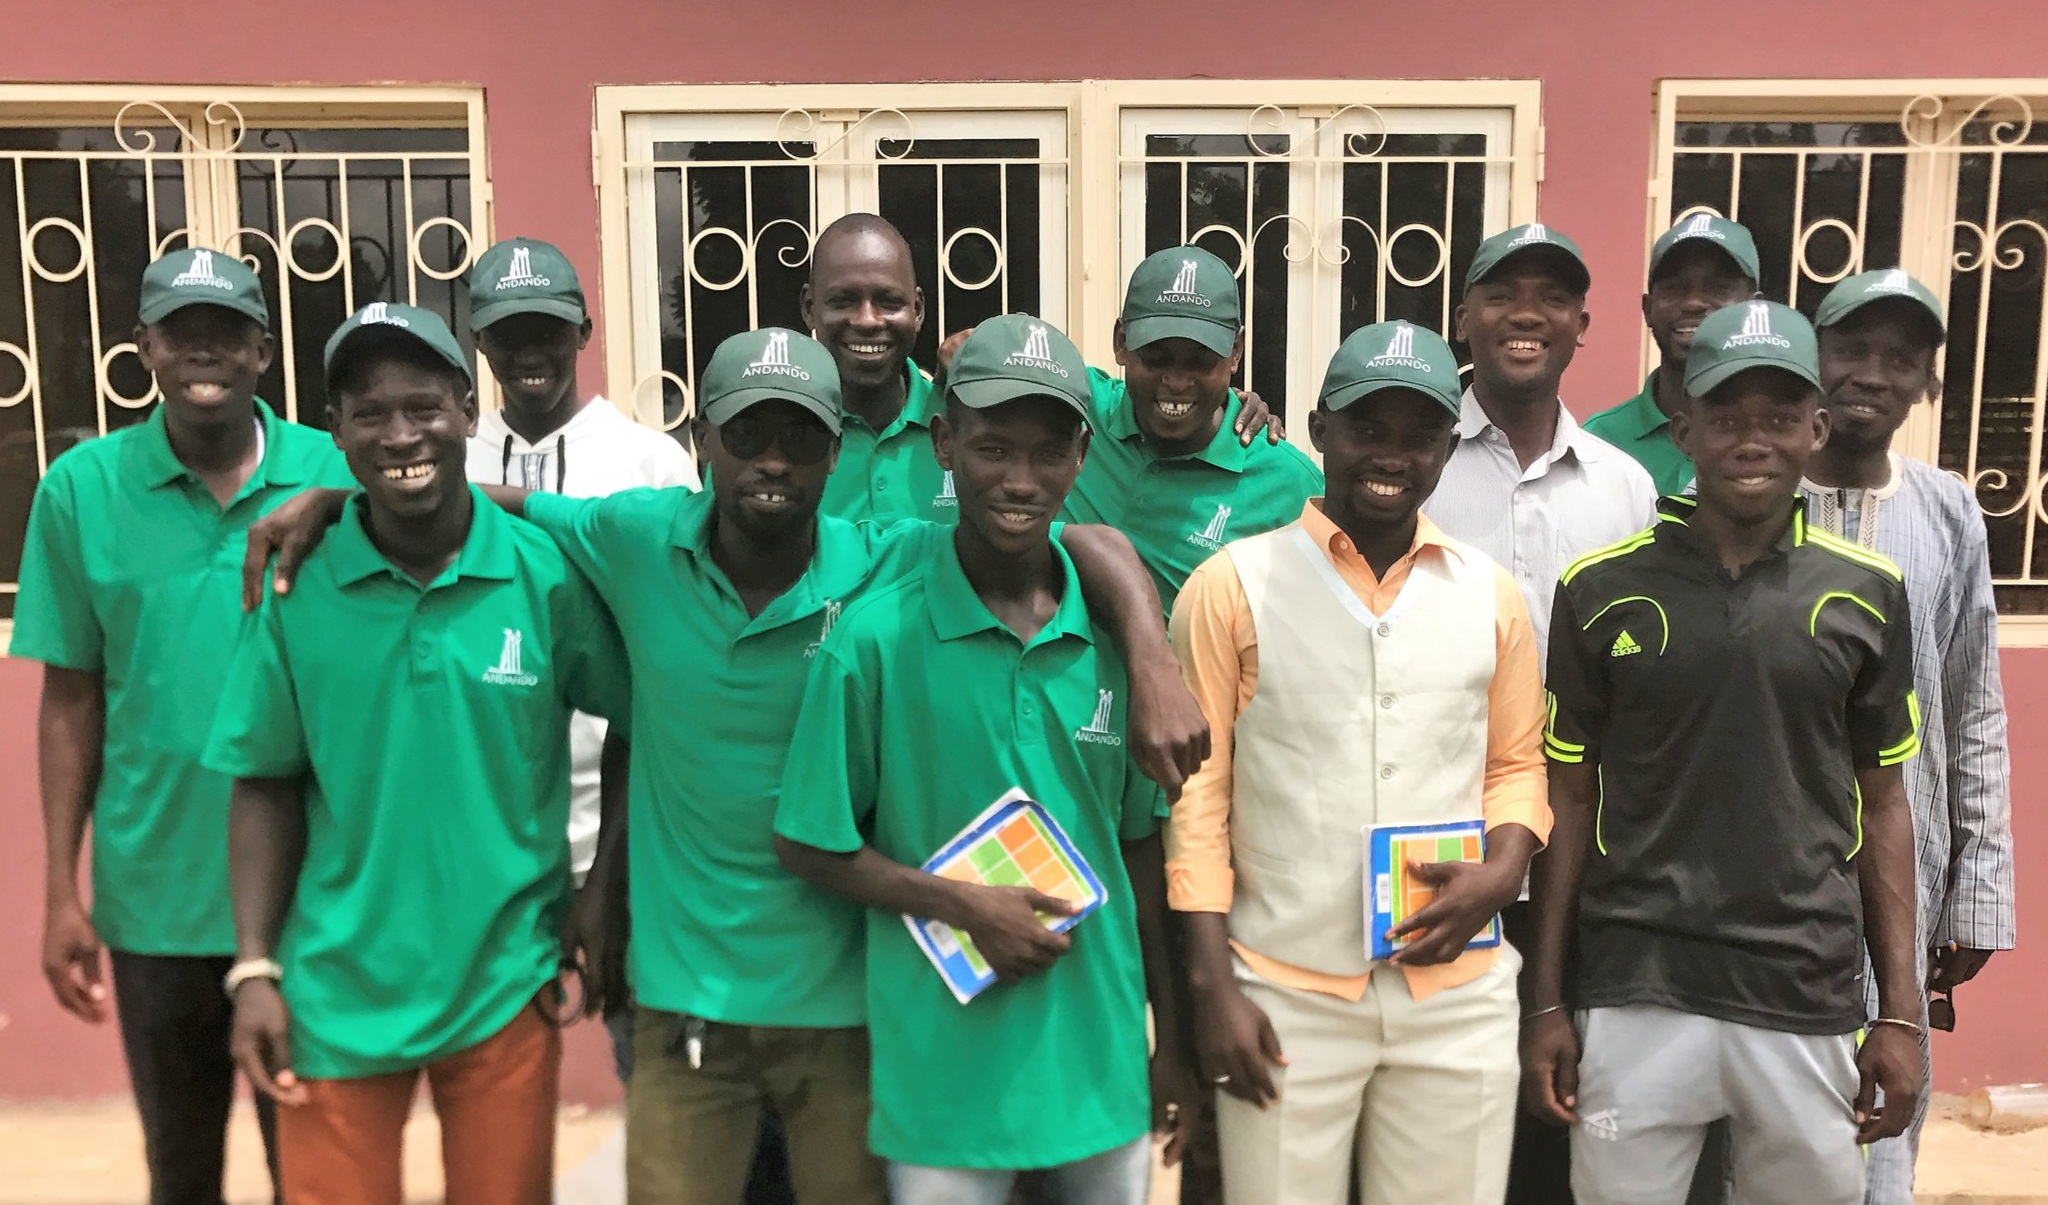 Some of our excellent staff that we have on the ground in Senegal.